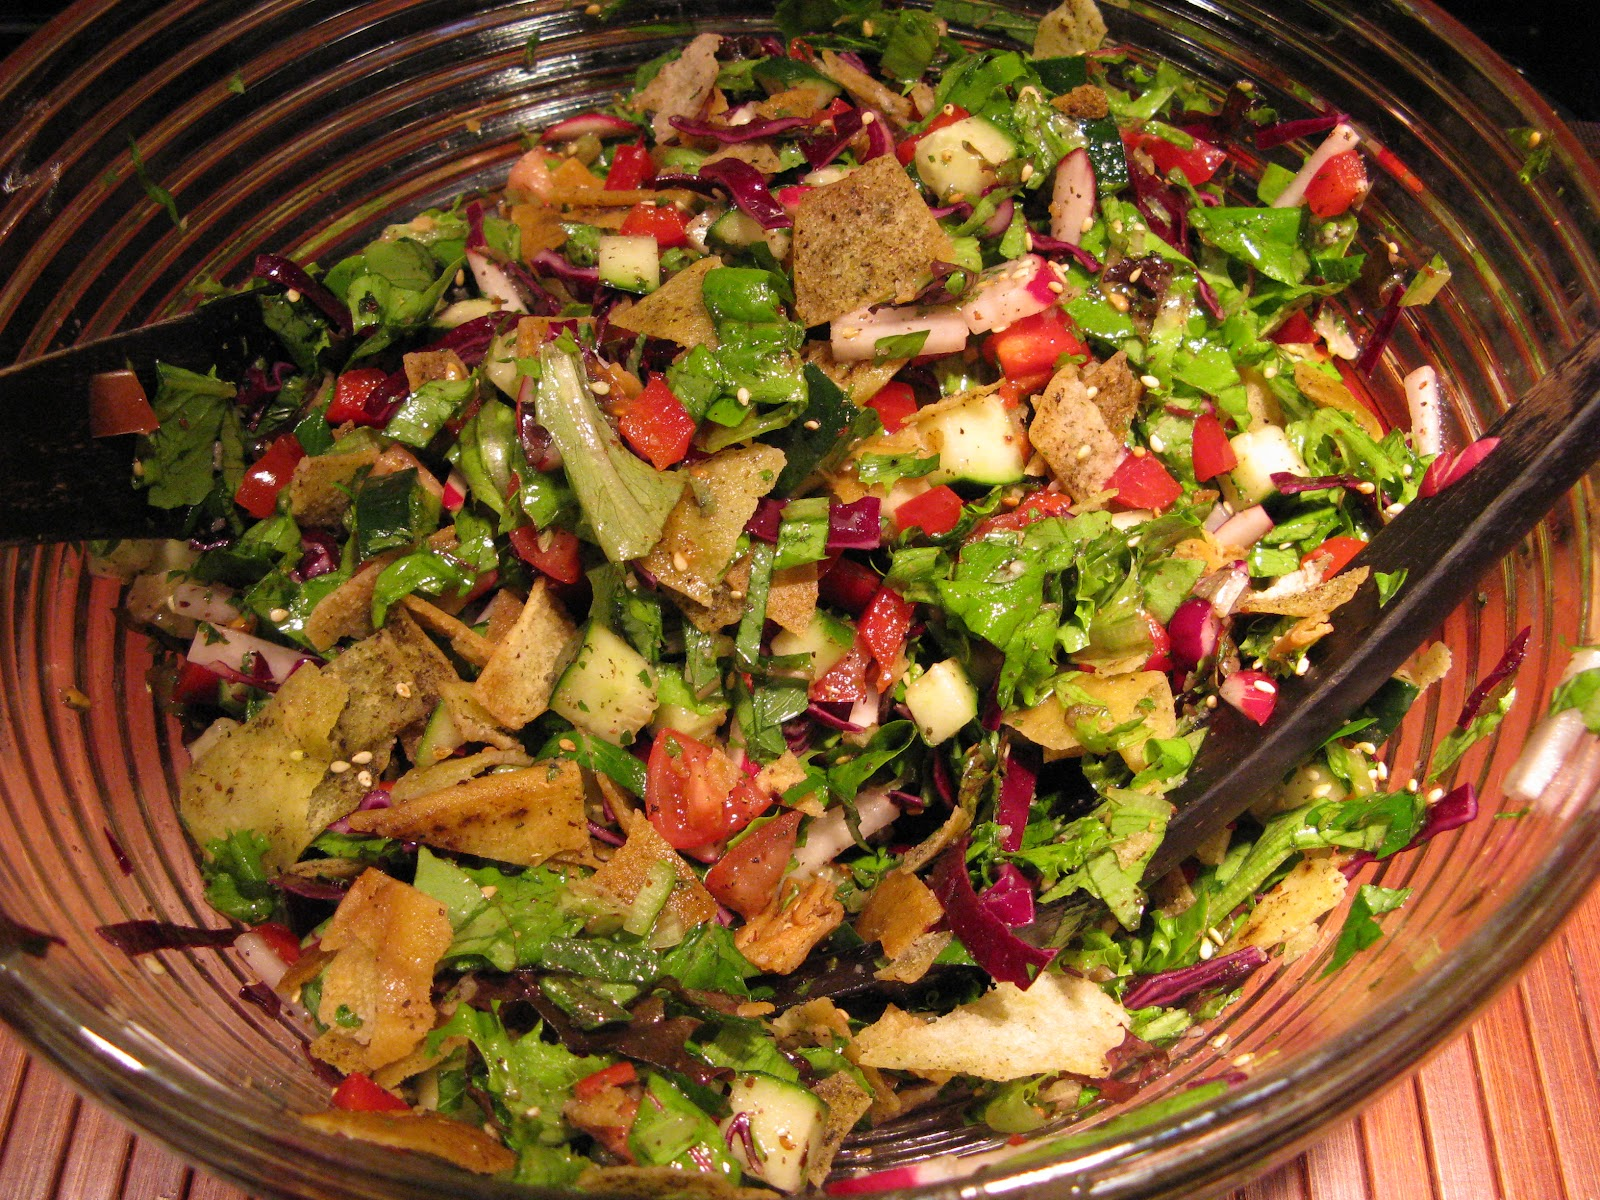 dorian allyn in the kitchen: Fattoush Salad